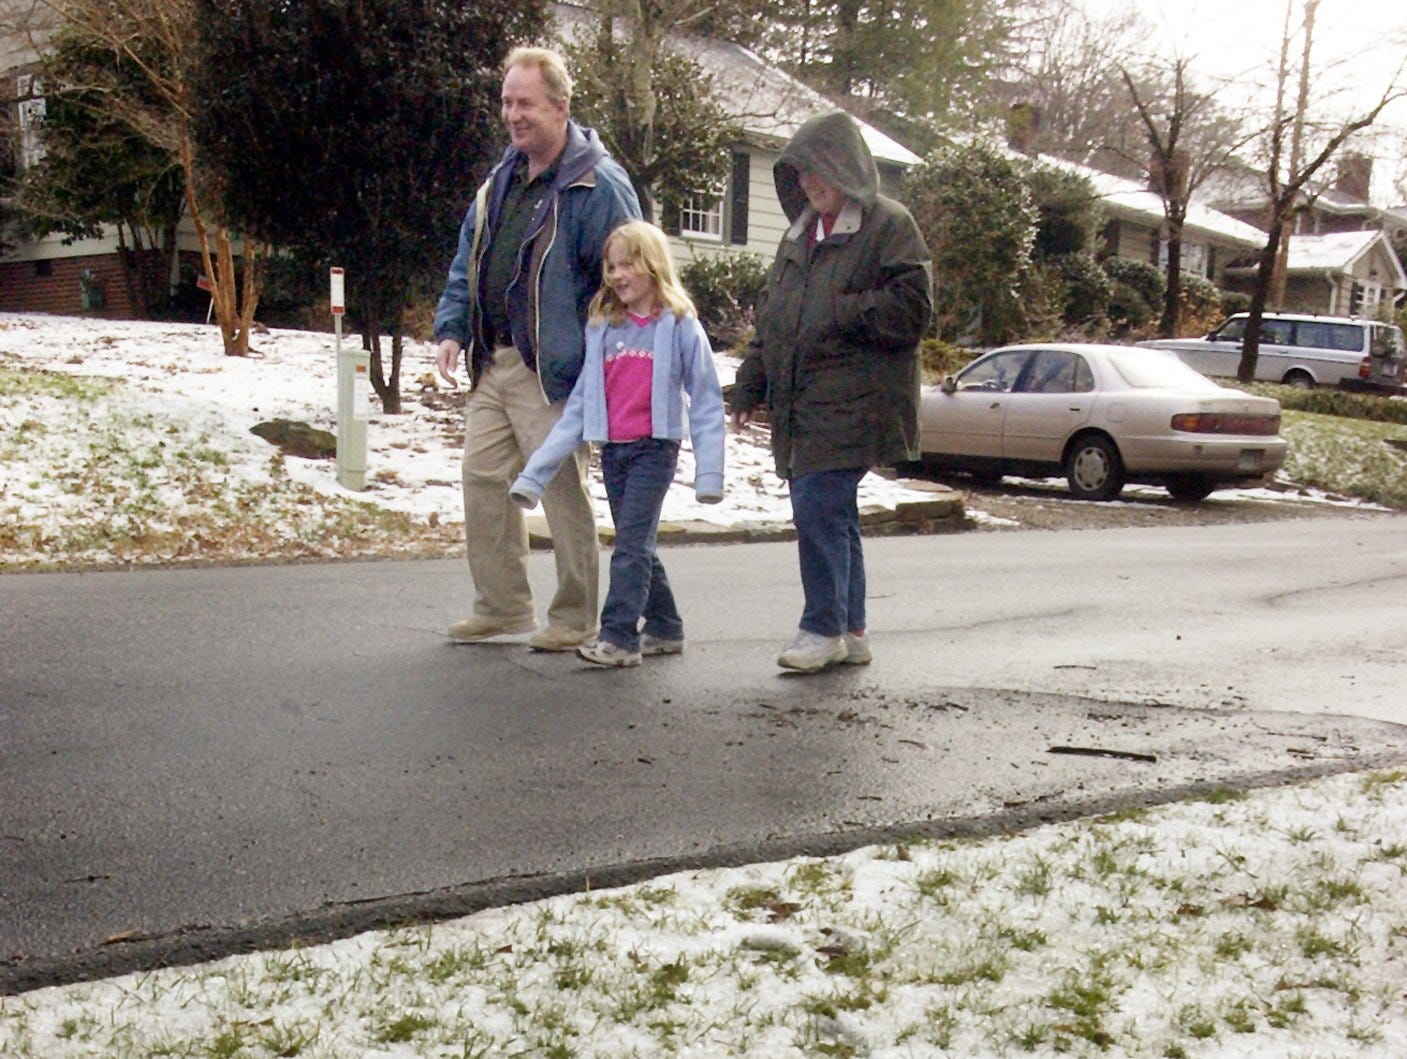 Madeline and Parrish Fletcher and their daughter Madeline, 6, enjoy a walk past the remants of snow in their Vista Hills neighborhood Sunday January 30, 2005.